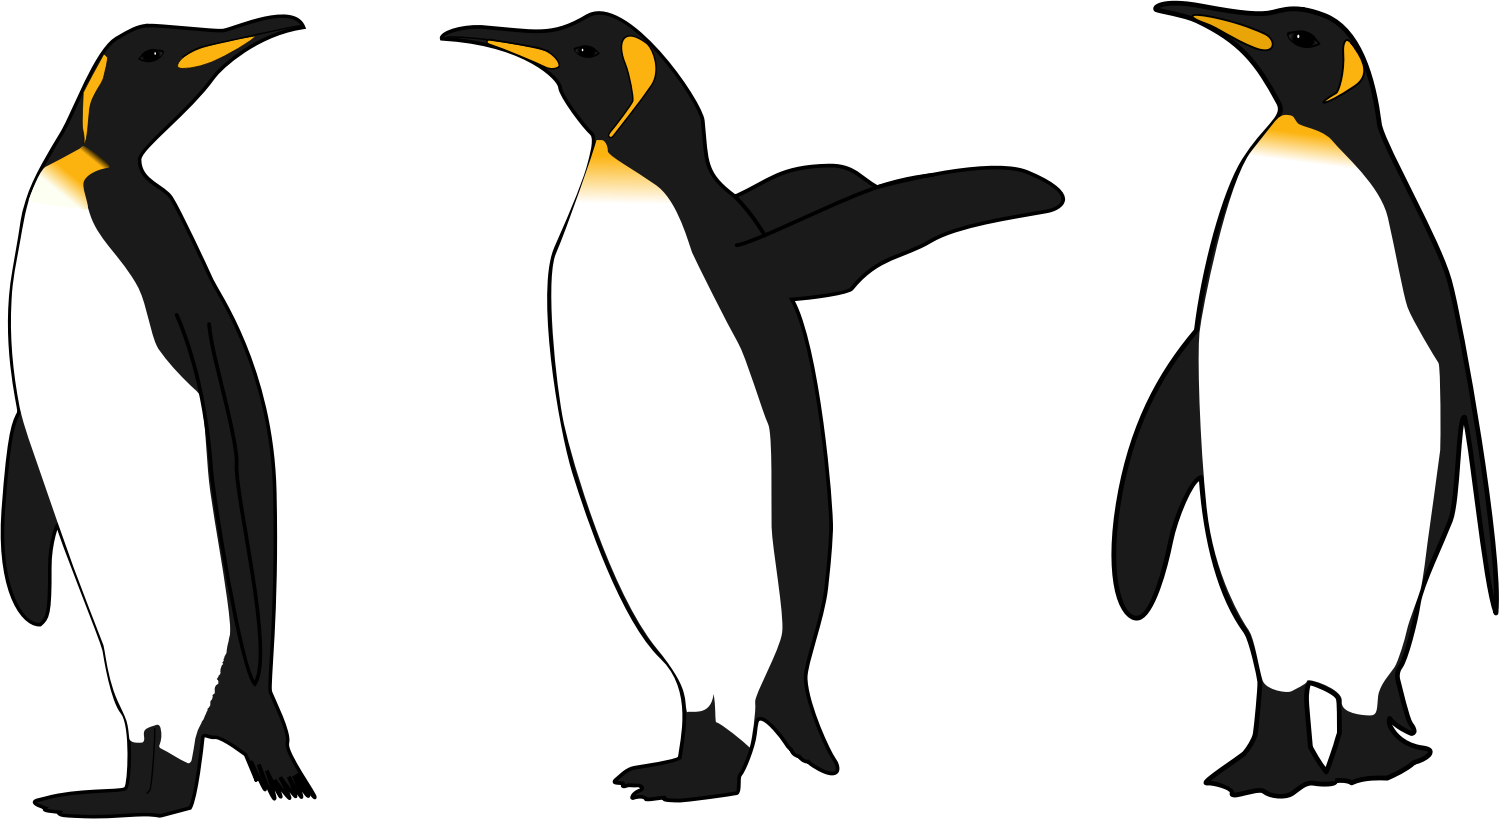 Three King Penguins by argumento